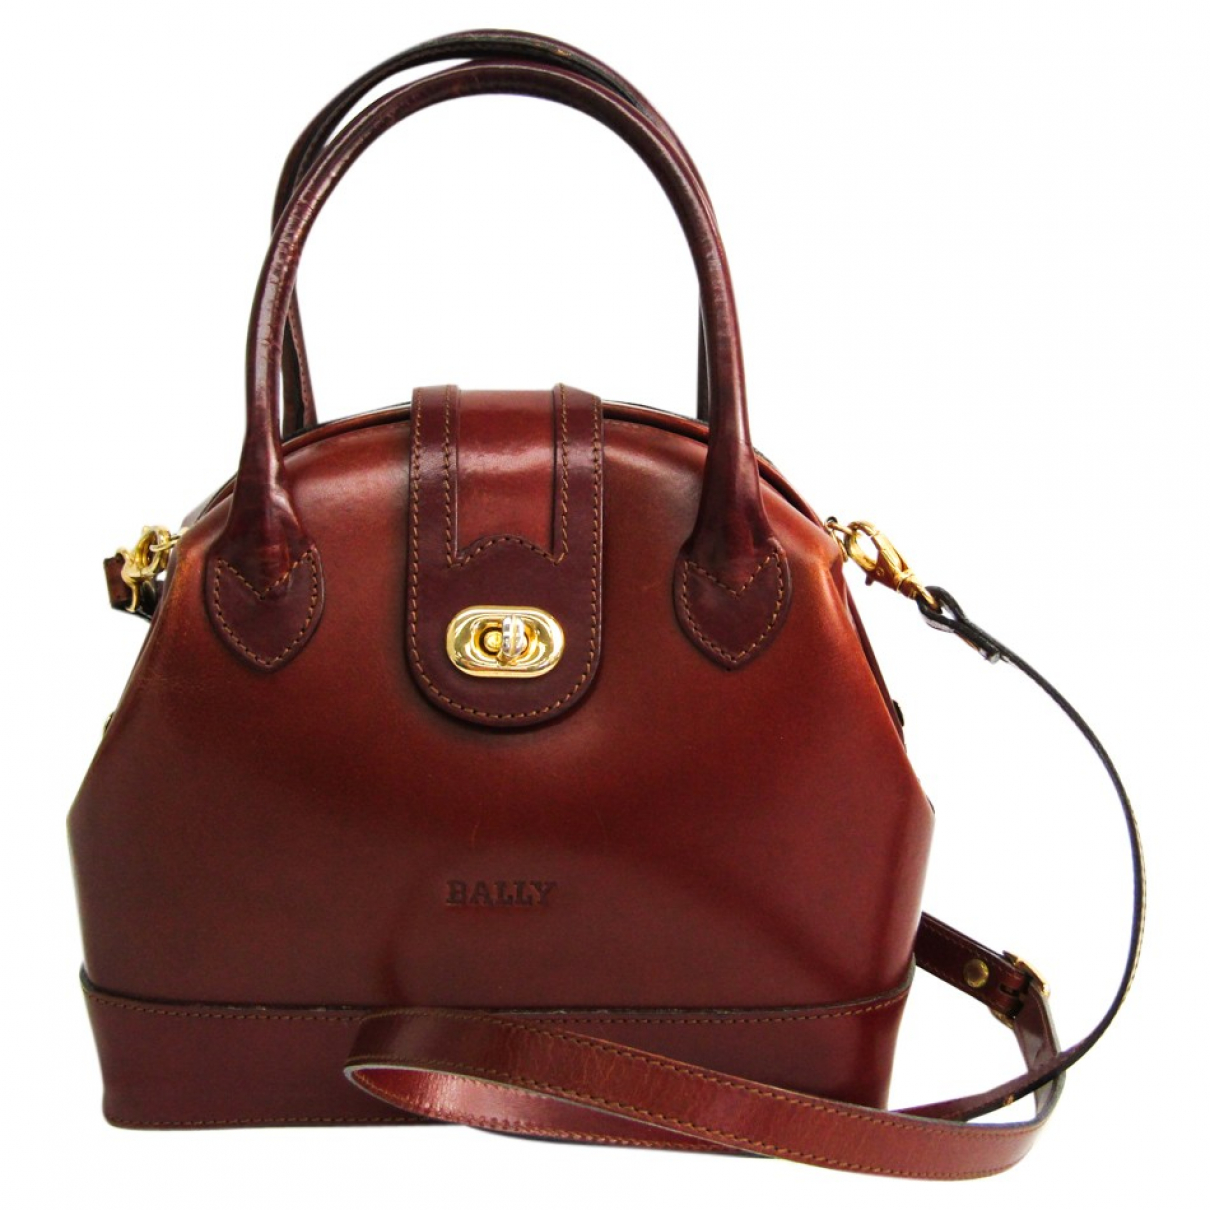 Bally \N Brown Leather handbag for Women \N